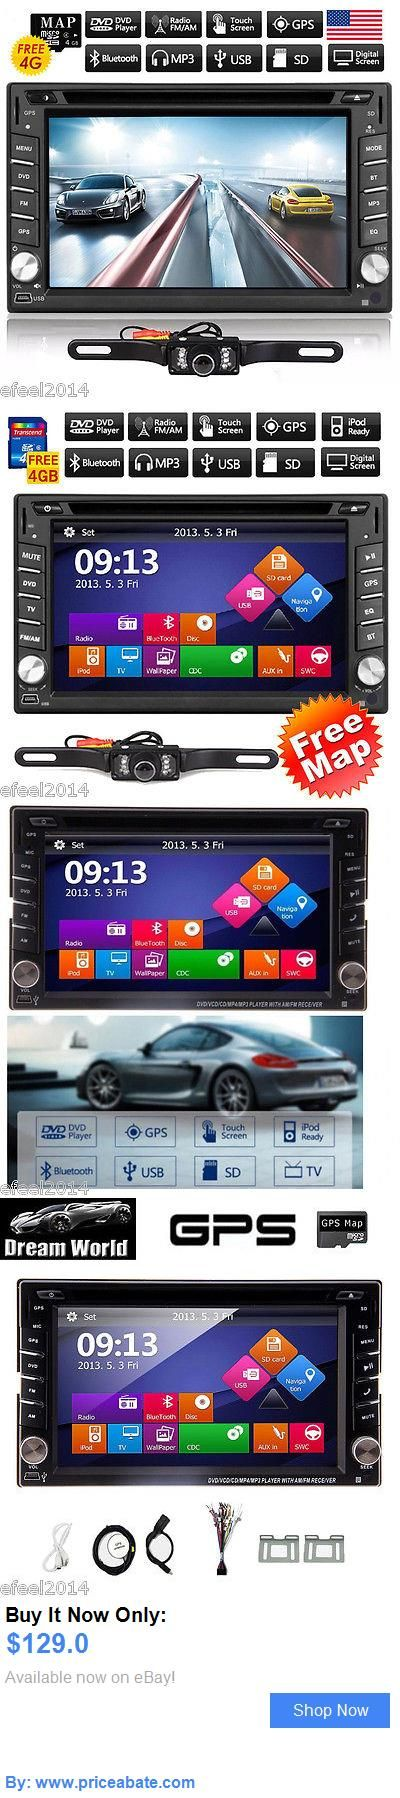 Vehicle Electronics And GPS: Camera Gps Navigation Double 2Din Car Stereo Dvd Player Ipod Bluetooth Mp3 Radio BUY IT NOW ONLY: $129.0 #priceabateVehicleElectronicsAndGPS OR #priceabate